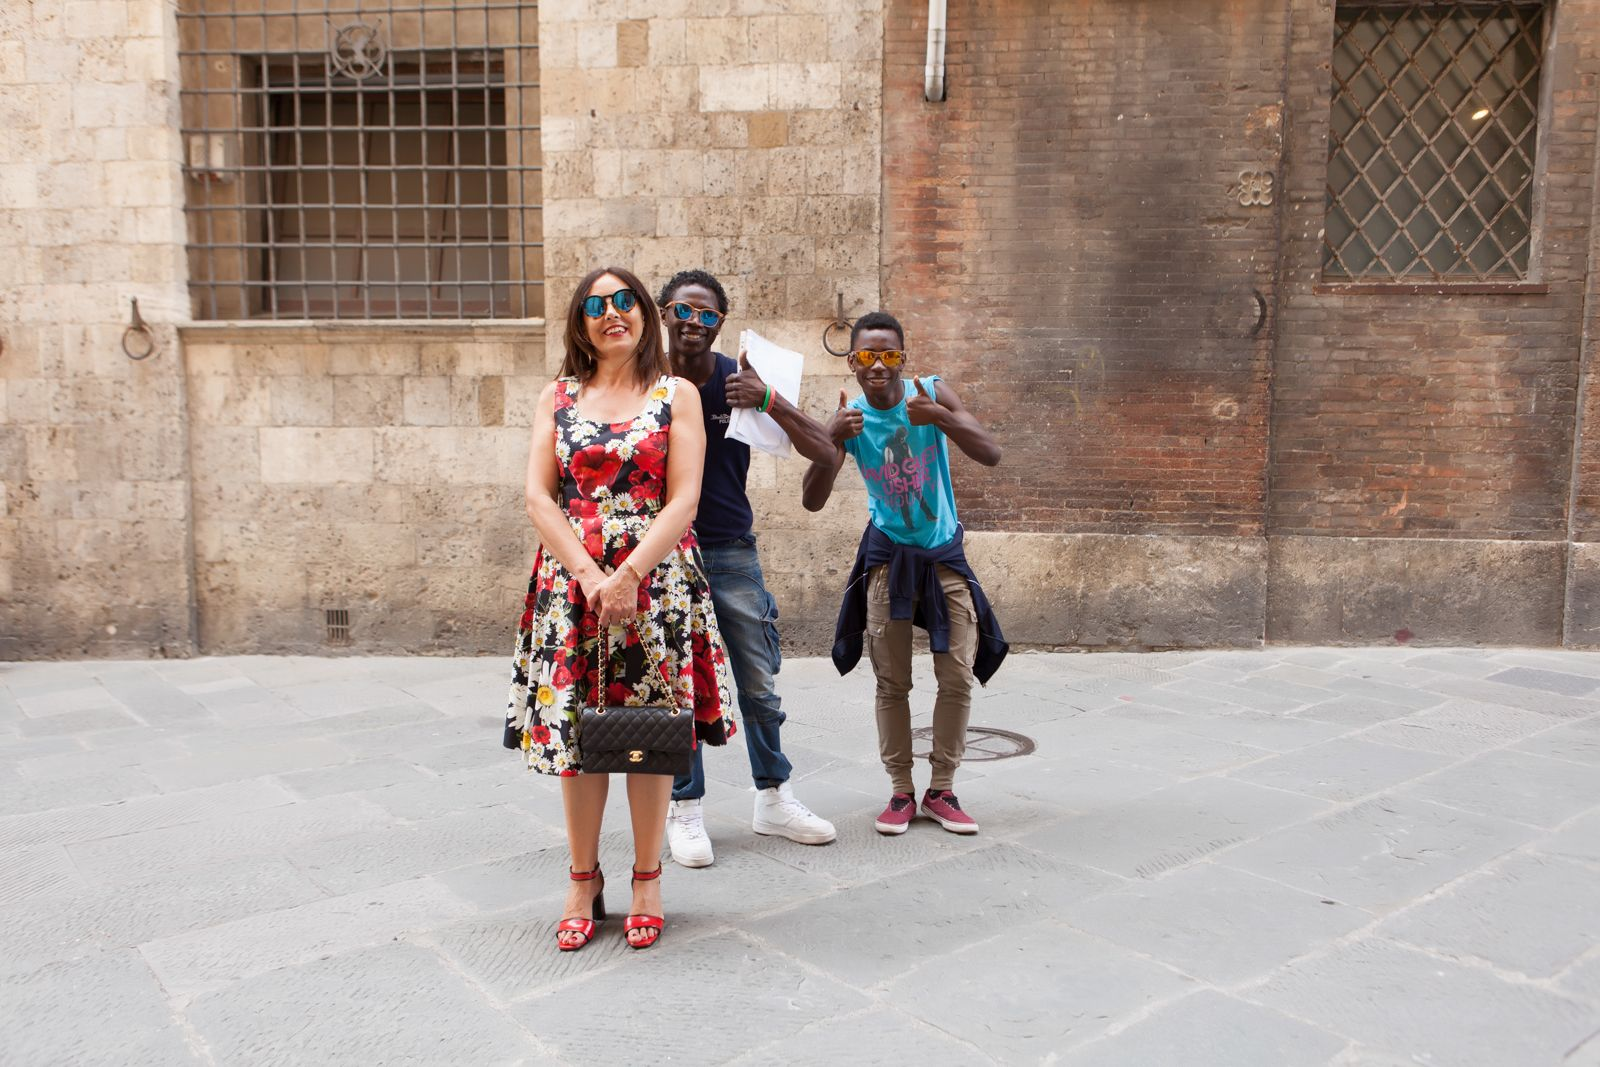 mani shoes, illesteva sunglasses, dolce gabbana flower dress, chanel bag. photo shooting in Siena - Not Only Twenty Fashion blog with new friends funny time